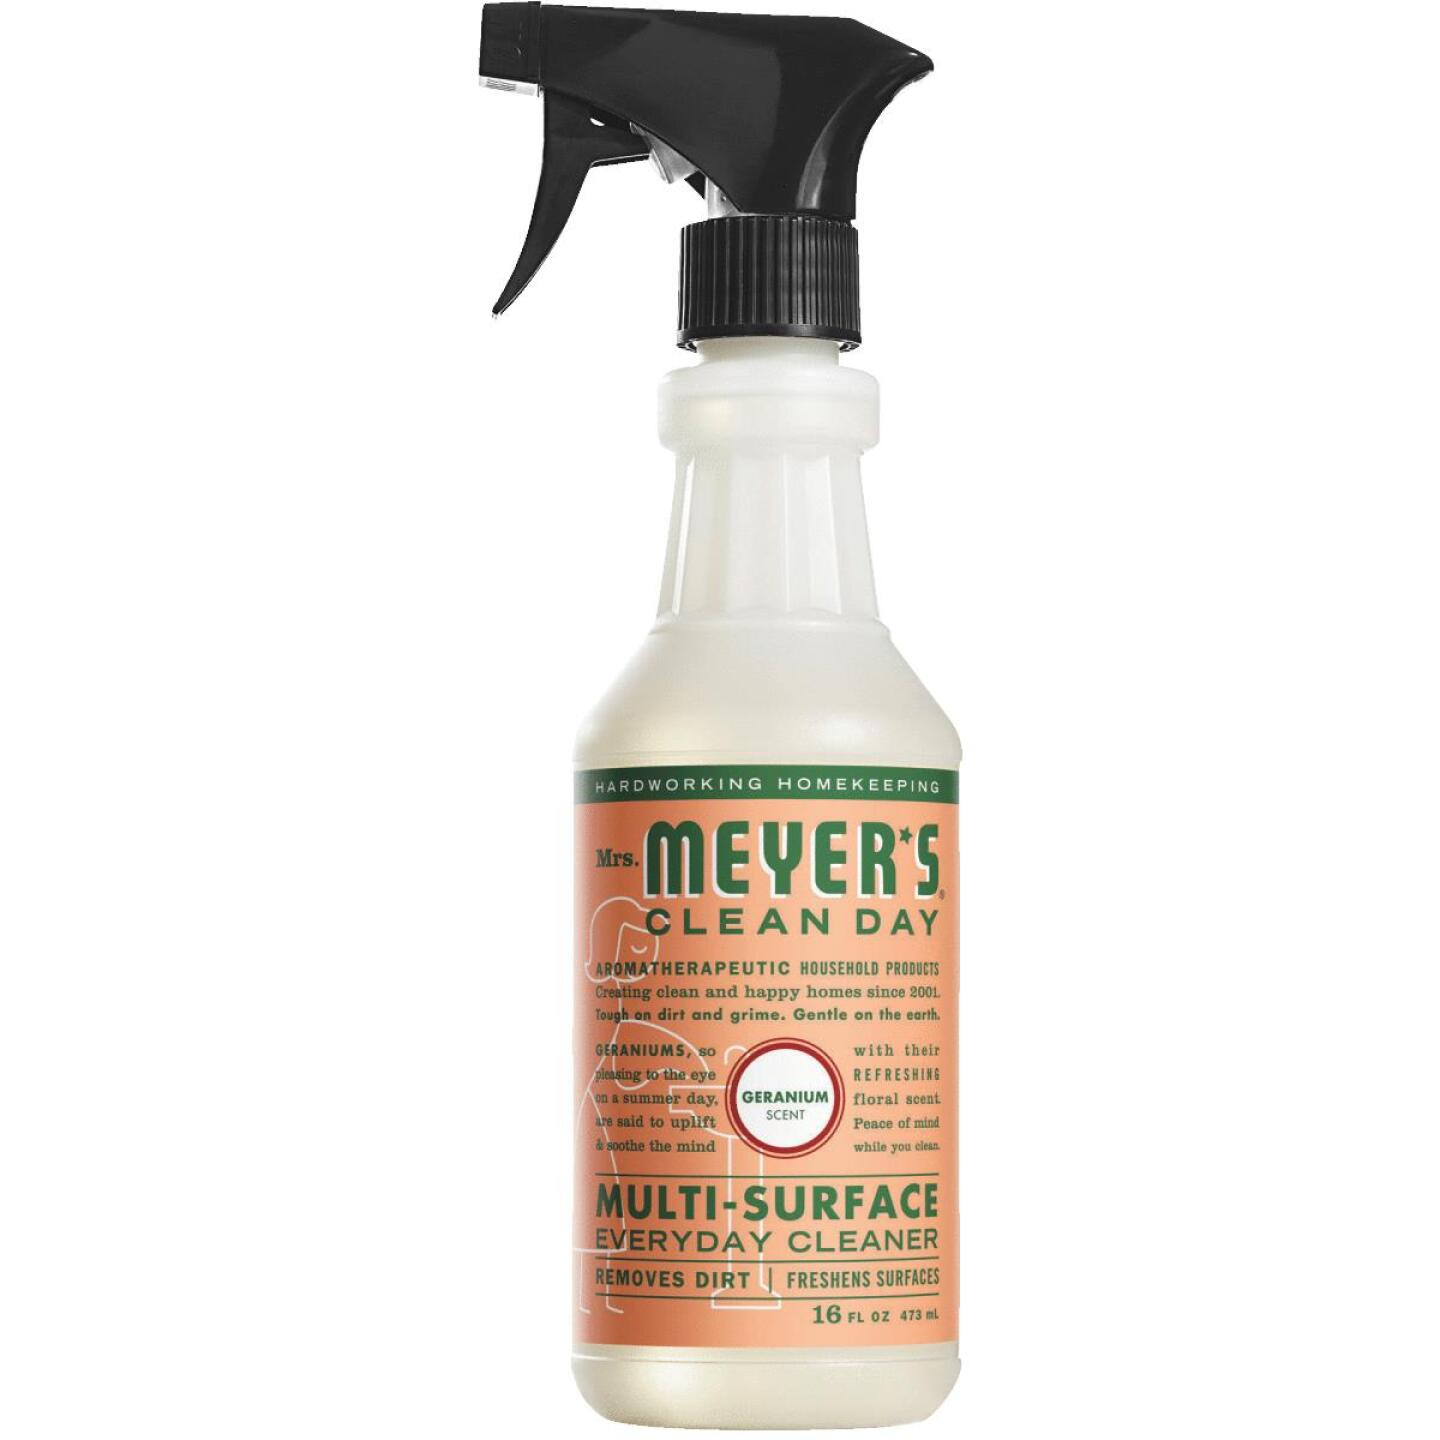 Mrs. Meyer's Clean Day 16 Oz. Geranium Multi-Surface Everyday Cleaner Image 1